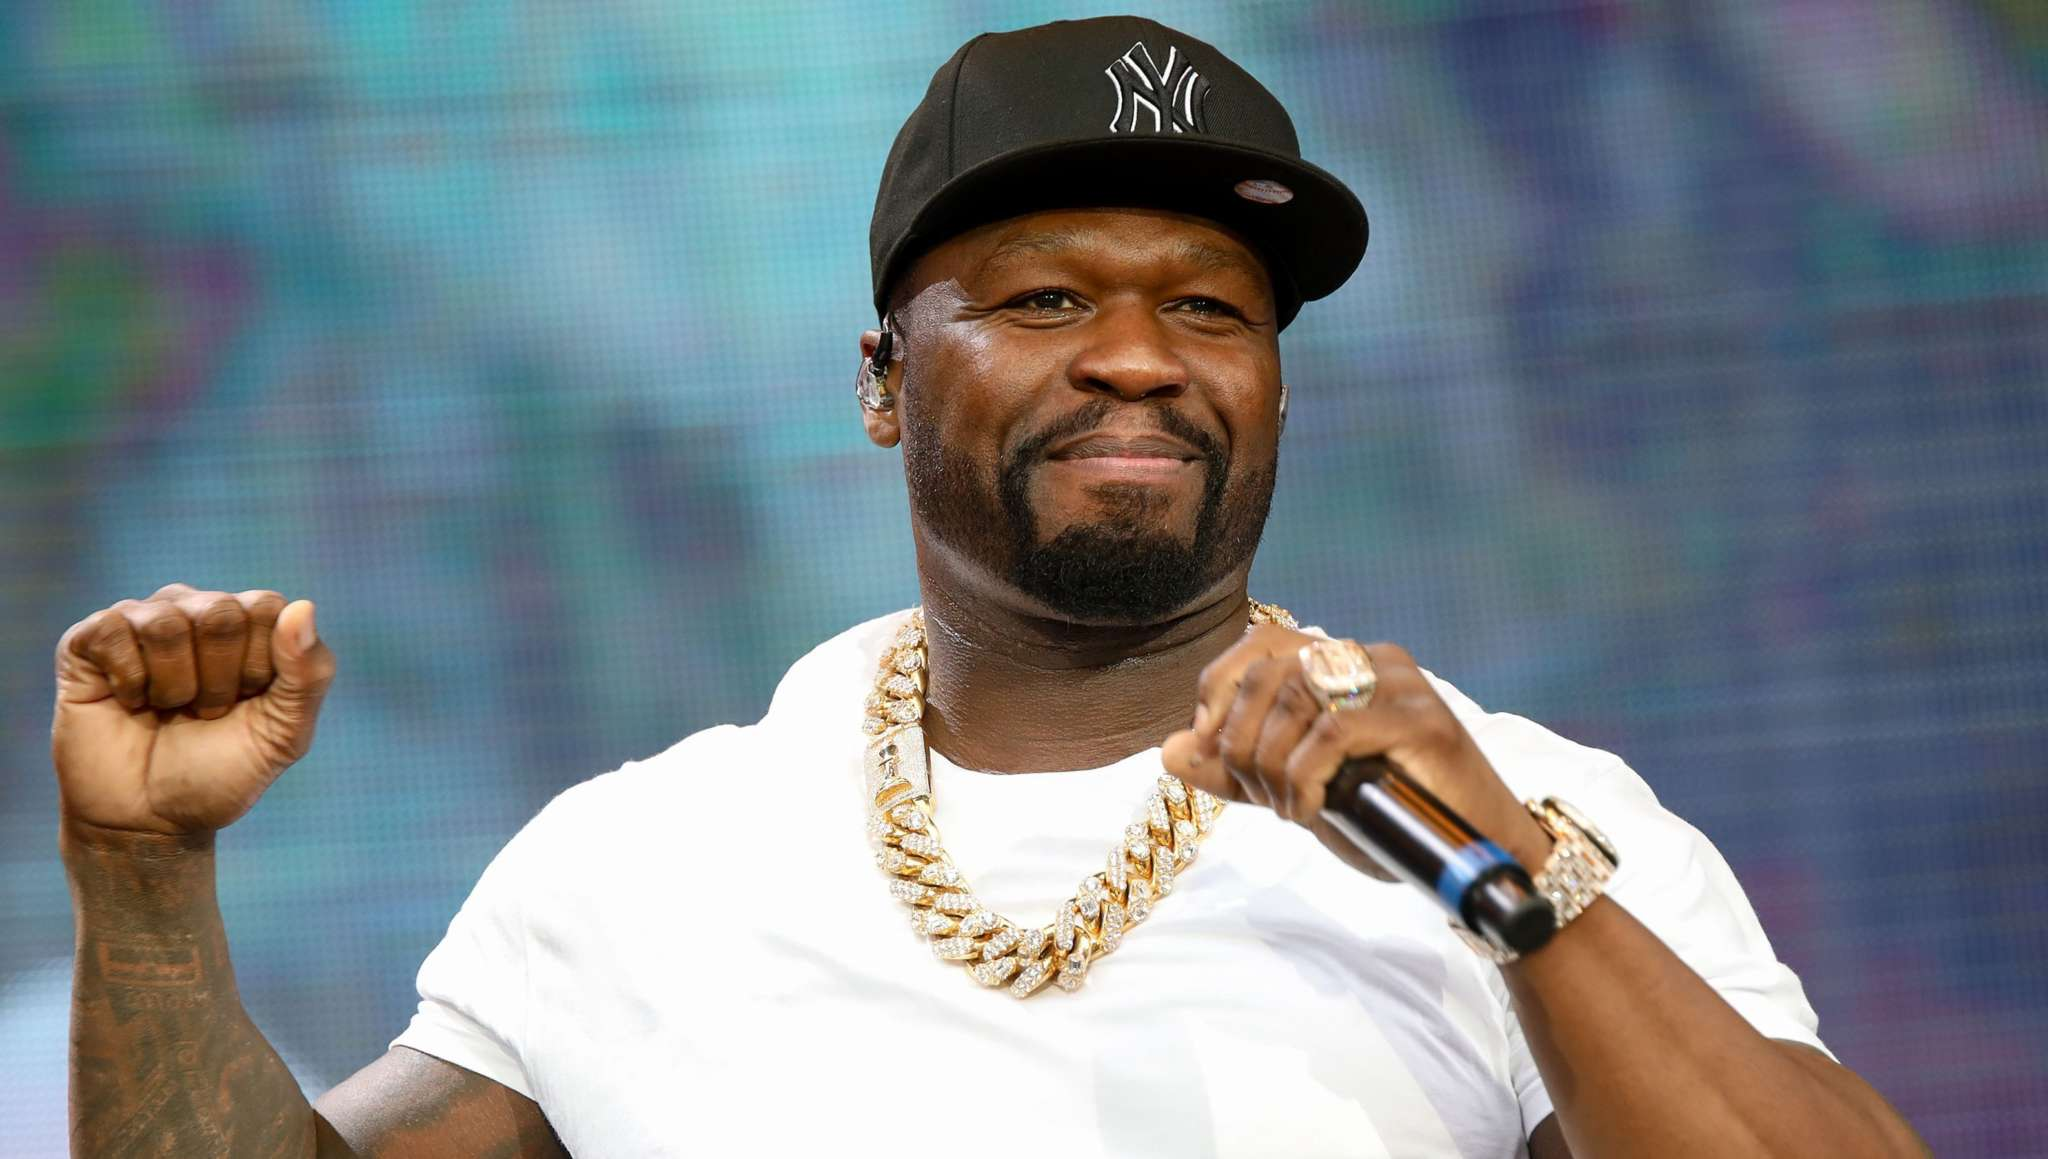 50 Cent: Here's Why He Deleted His Instagram Account – Is He Finally Done Trolling People